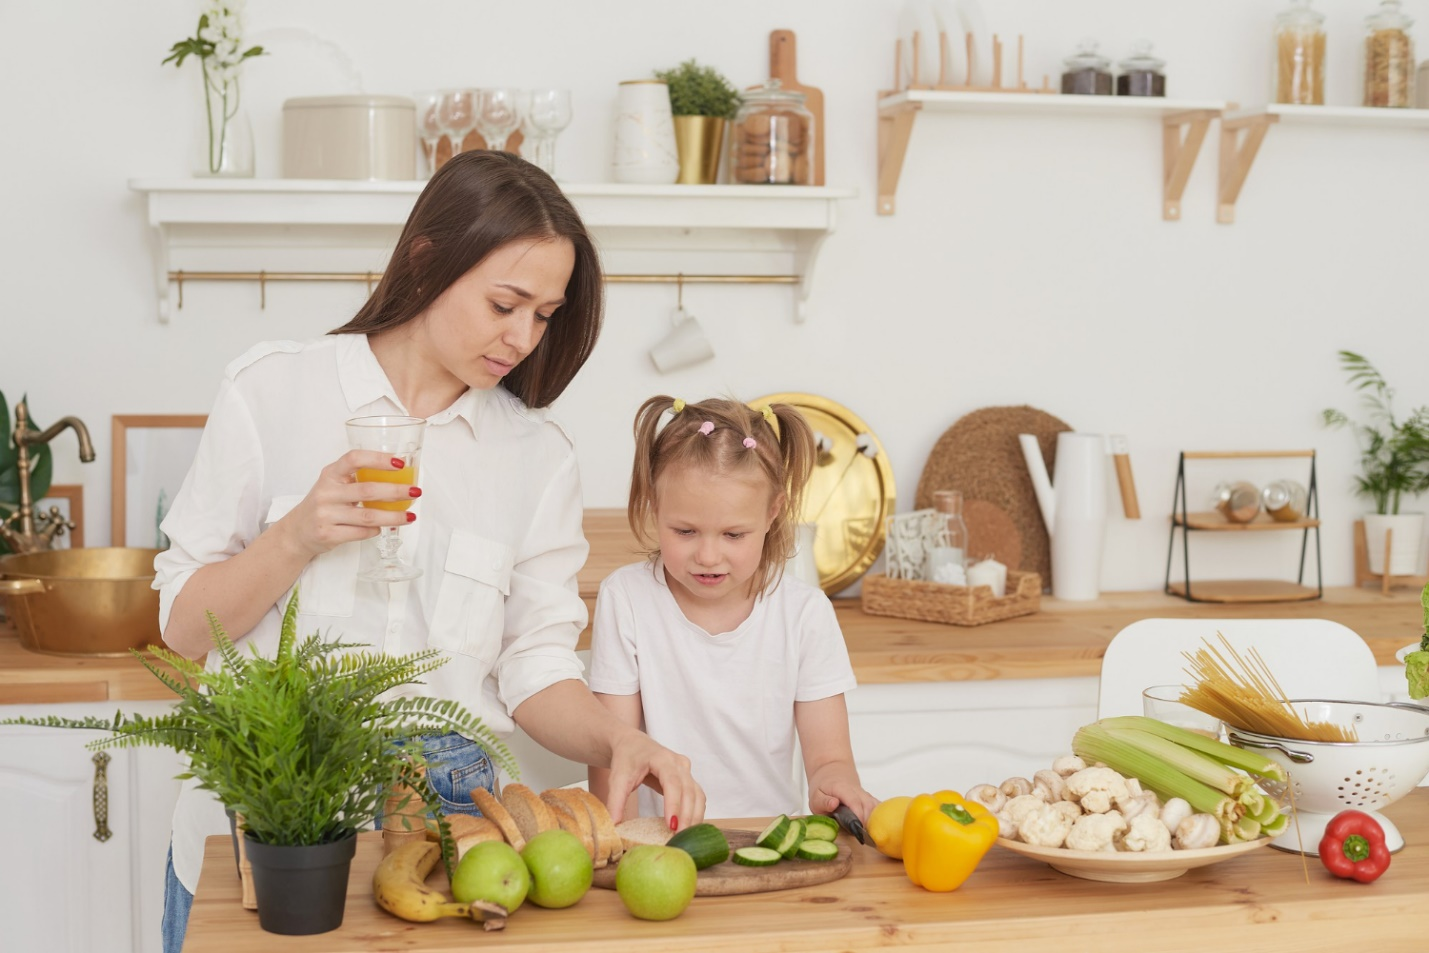 C:\Users\Dell\Downloads\mom-daughter-prepare-salad-kitchen-happy-loving-family-are-preparing-together-concept-healthy-diet-lifestyle-family-value.jpg